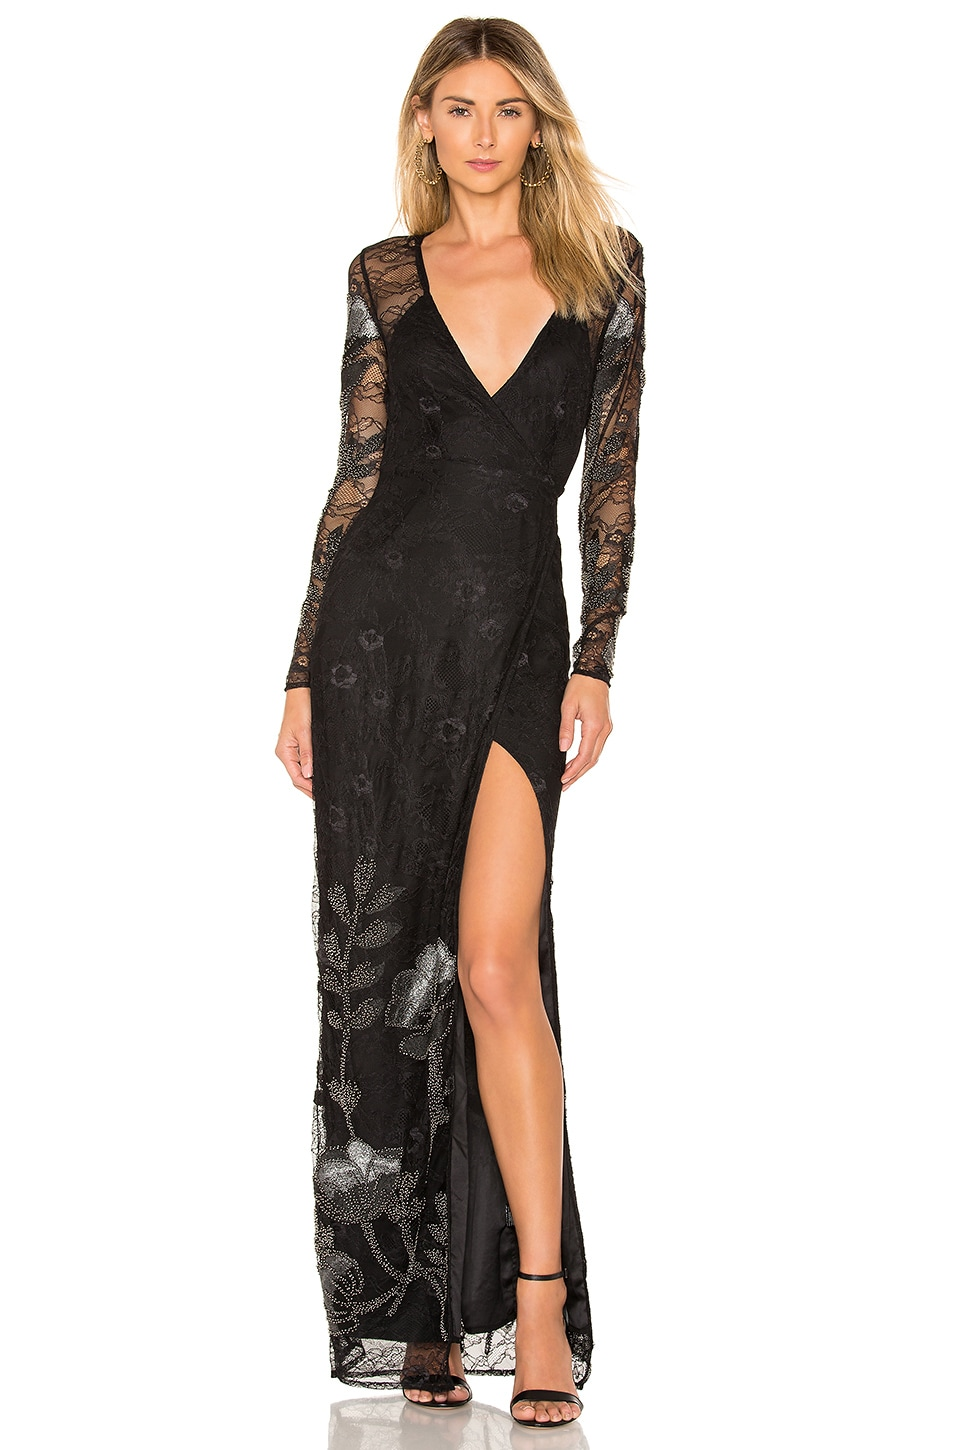 Michael Costello x REVOLVE Sonya Dress in Onyx